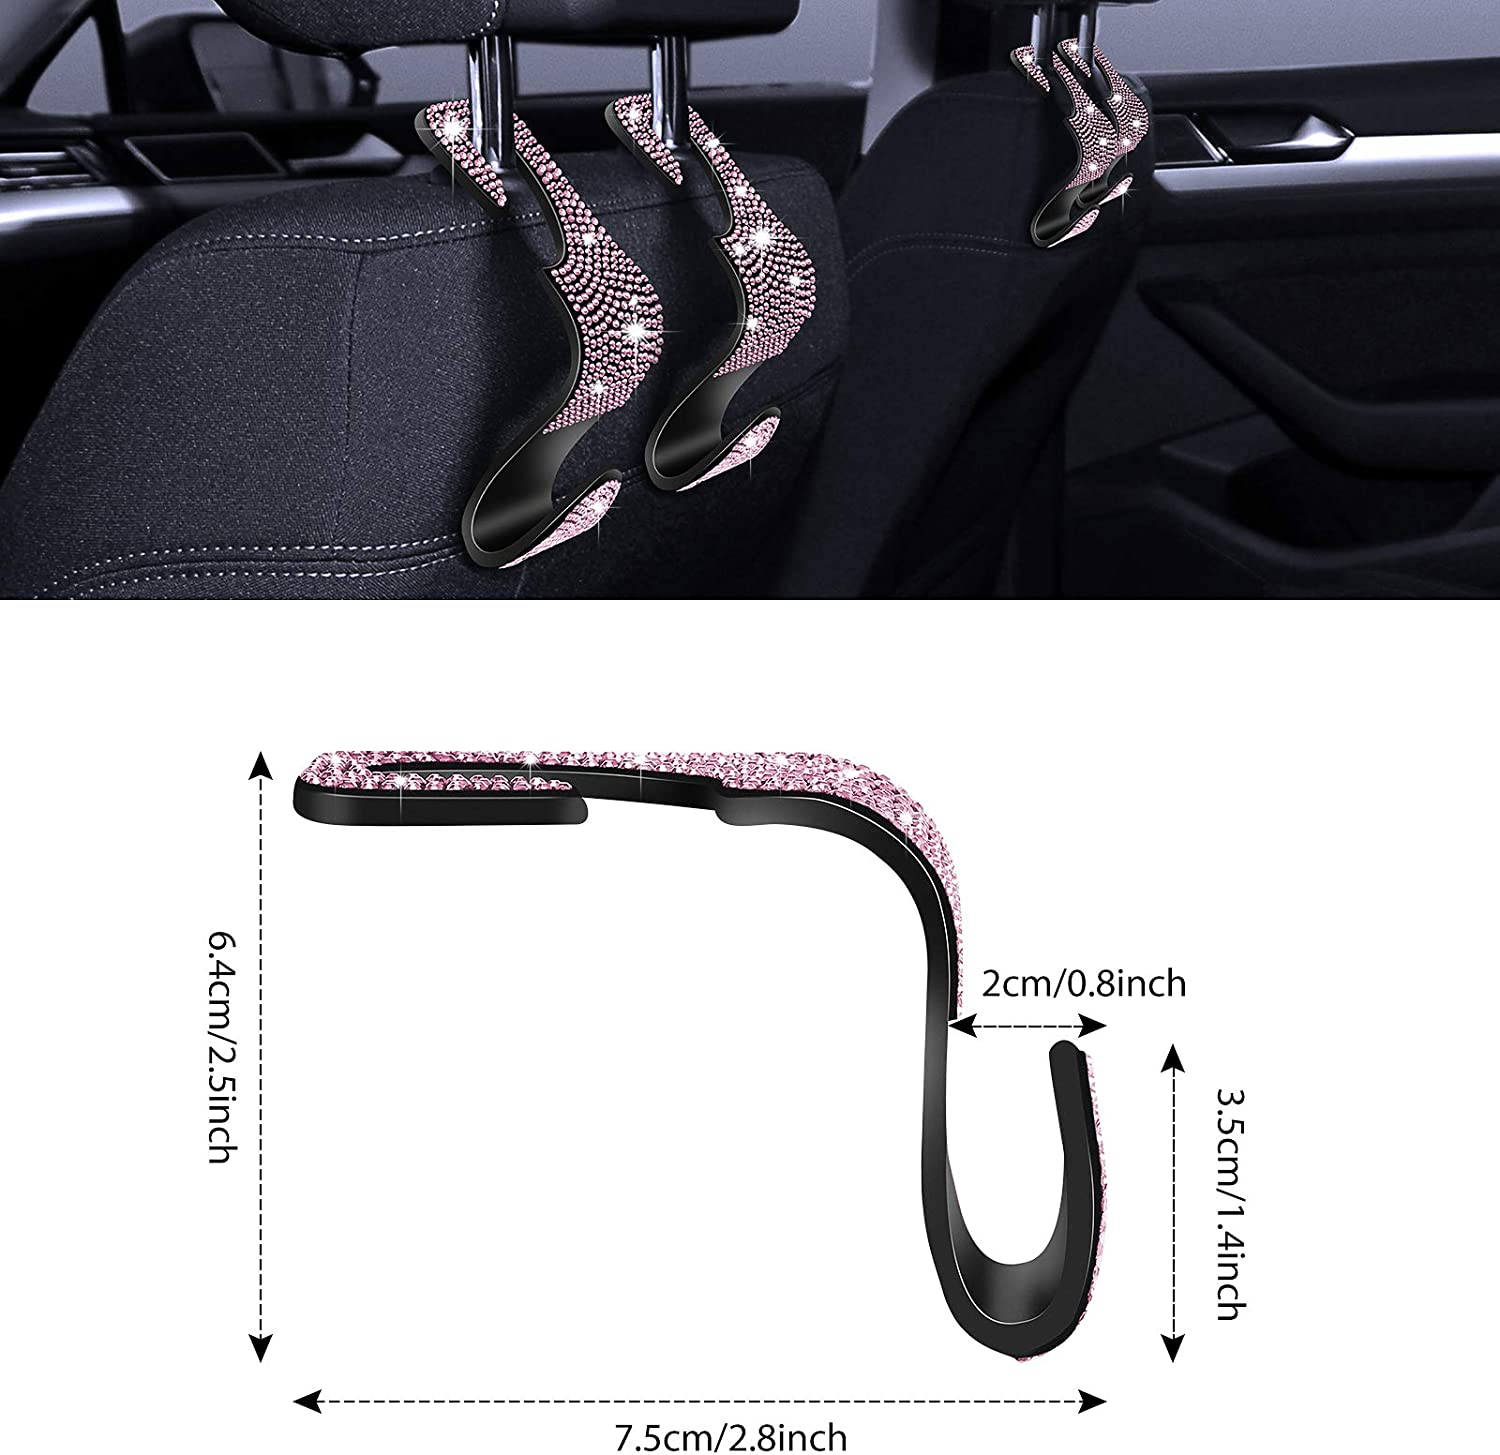 Car Headrest Hooks with Rhinestone Diamond Hanger Back Seat Organizer for Vehicle 4 Car Hooks with 1 Car One-Button Start Ring Backseat Bling Car Hooks Bling Car Seat Hanger Black Rhinestone